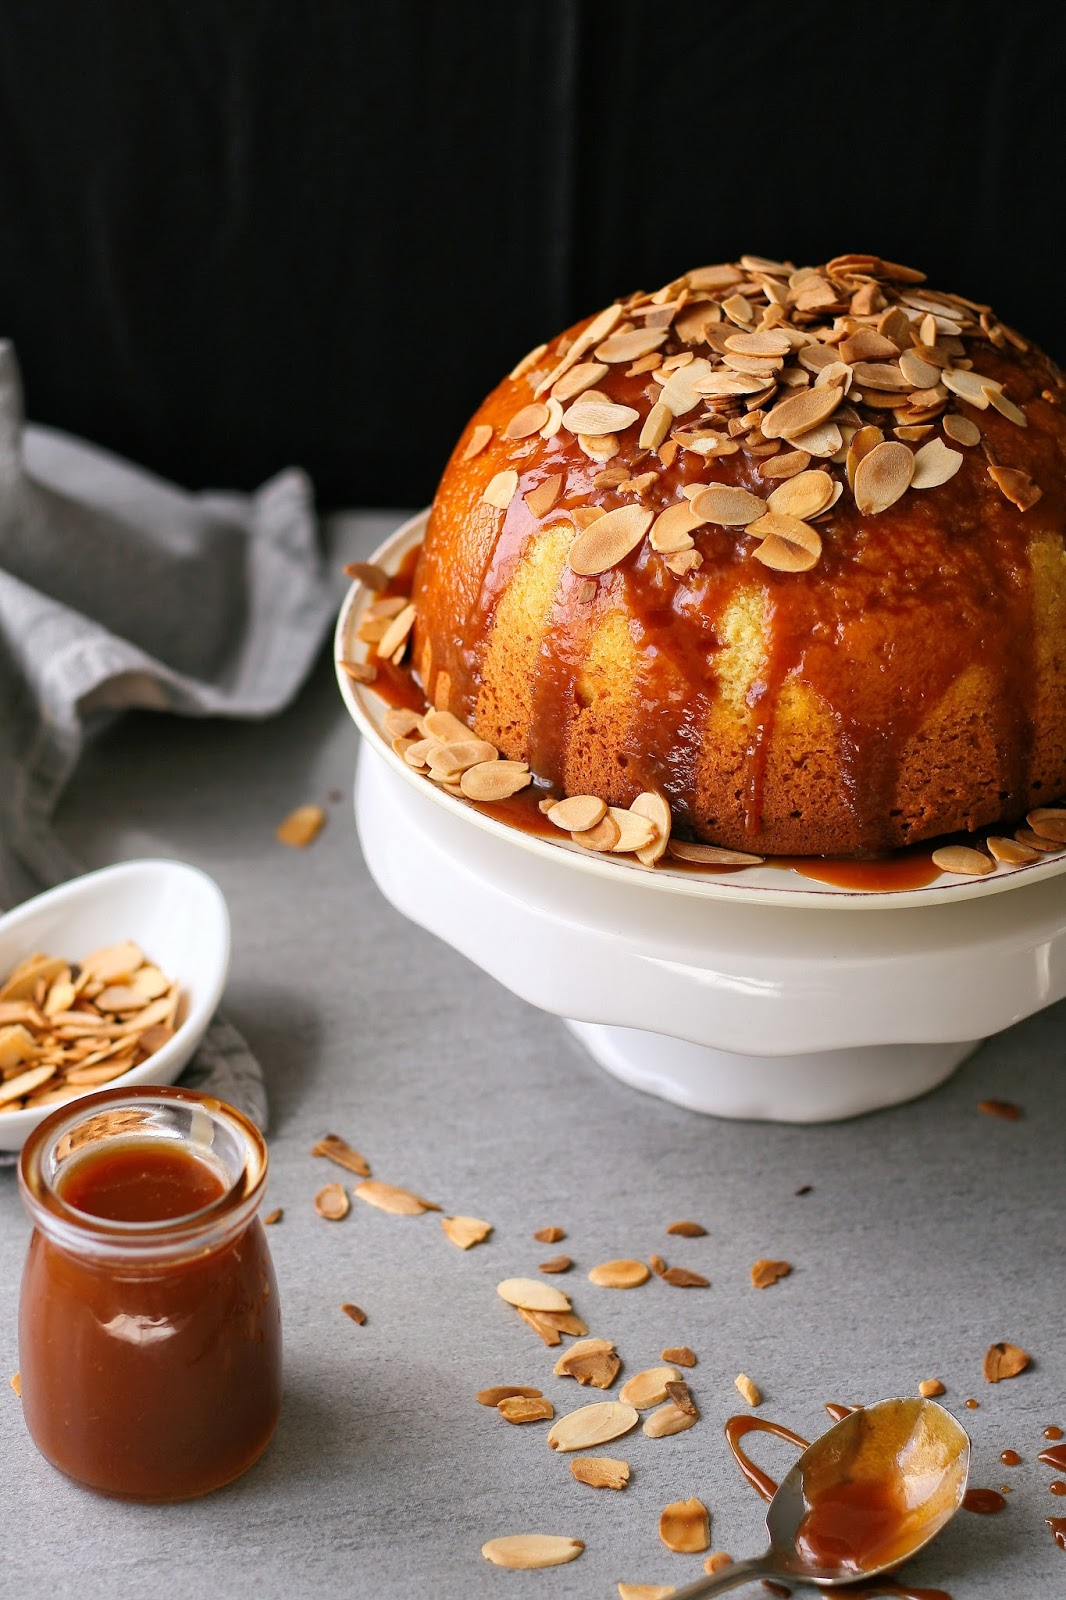 Sponge pudding with caramel sauce and toasted almonds.